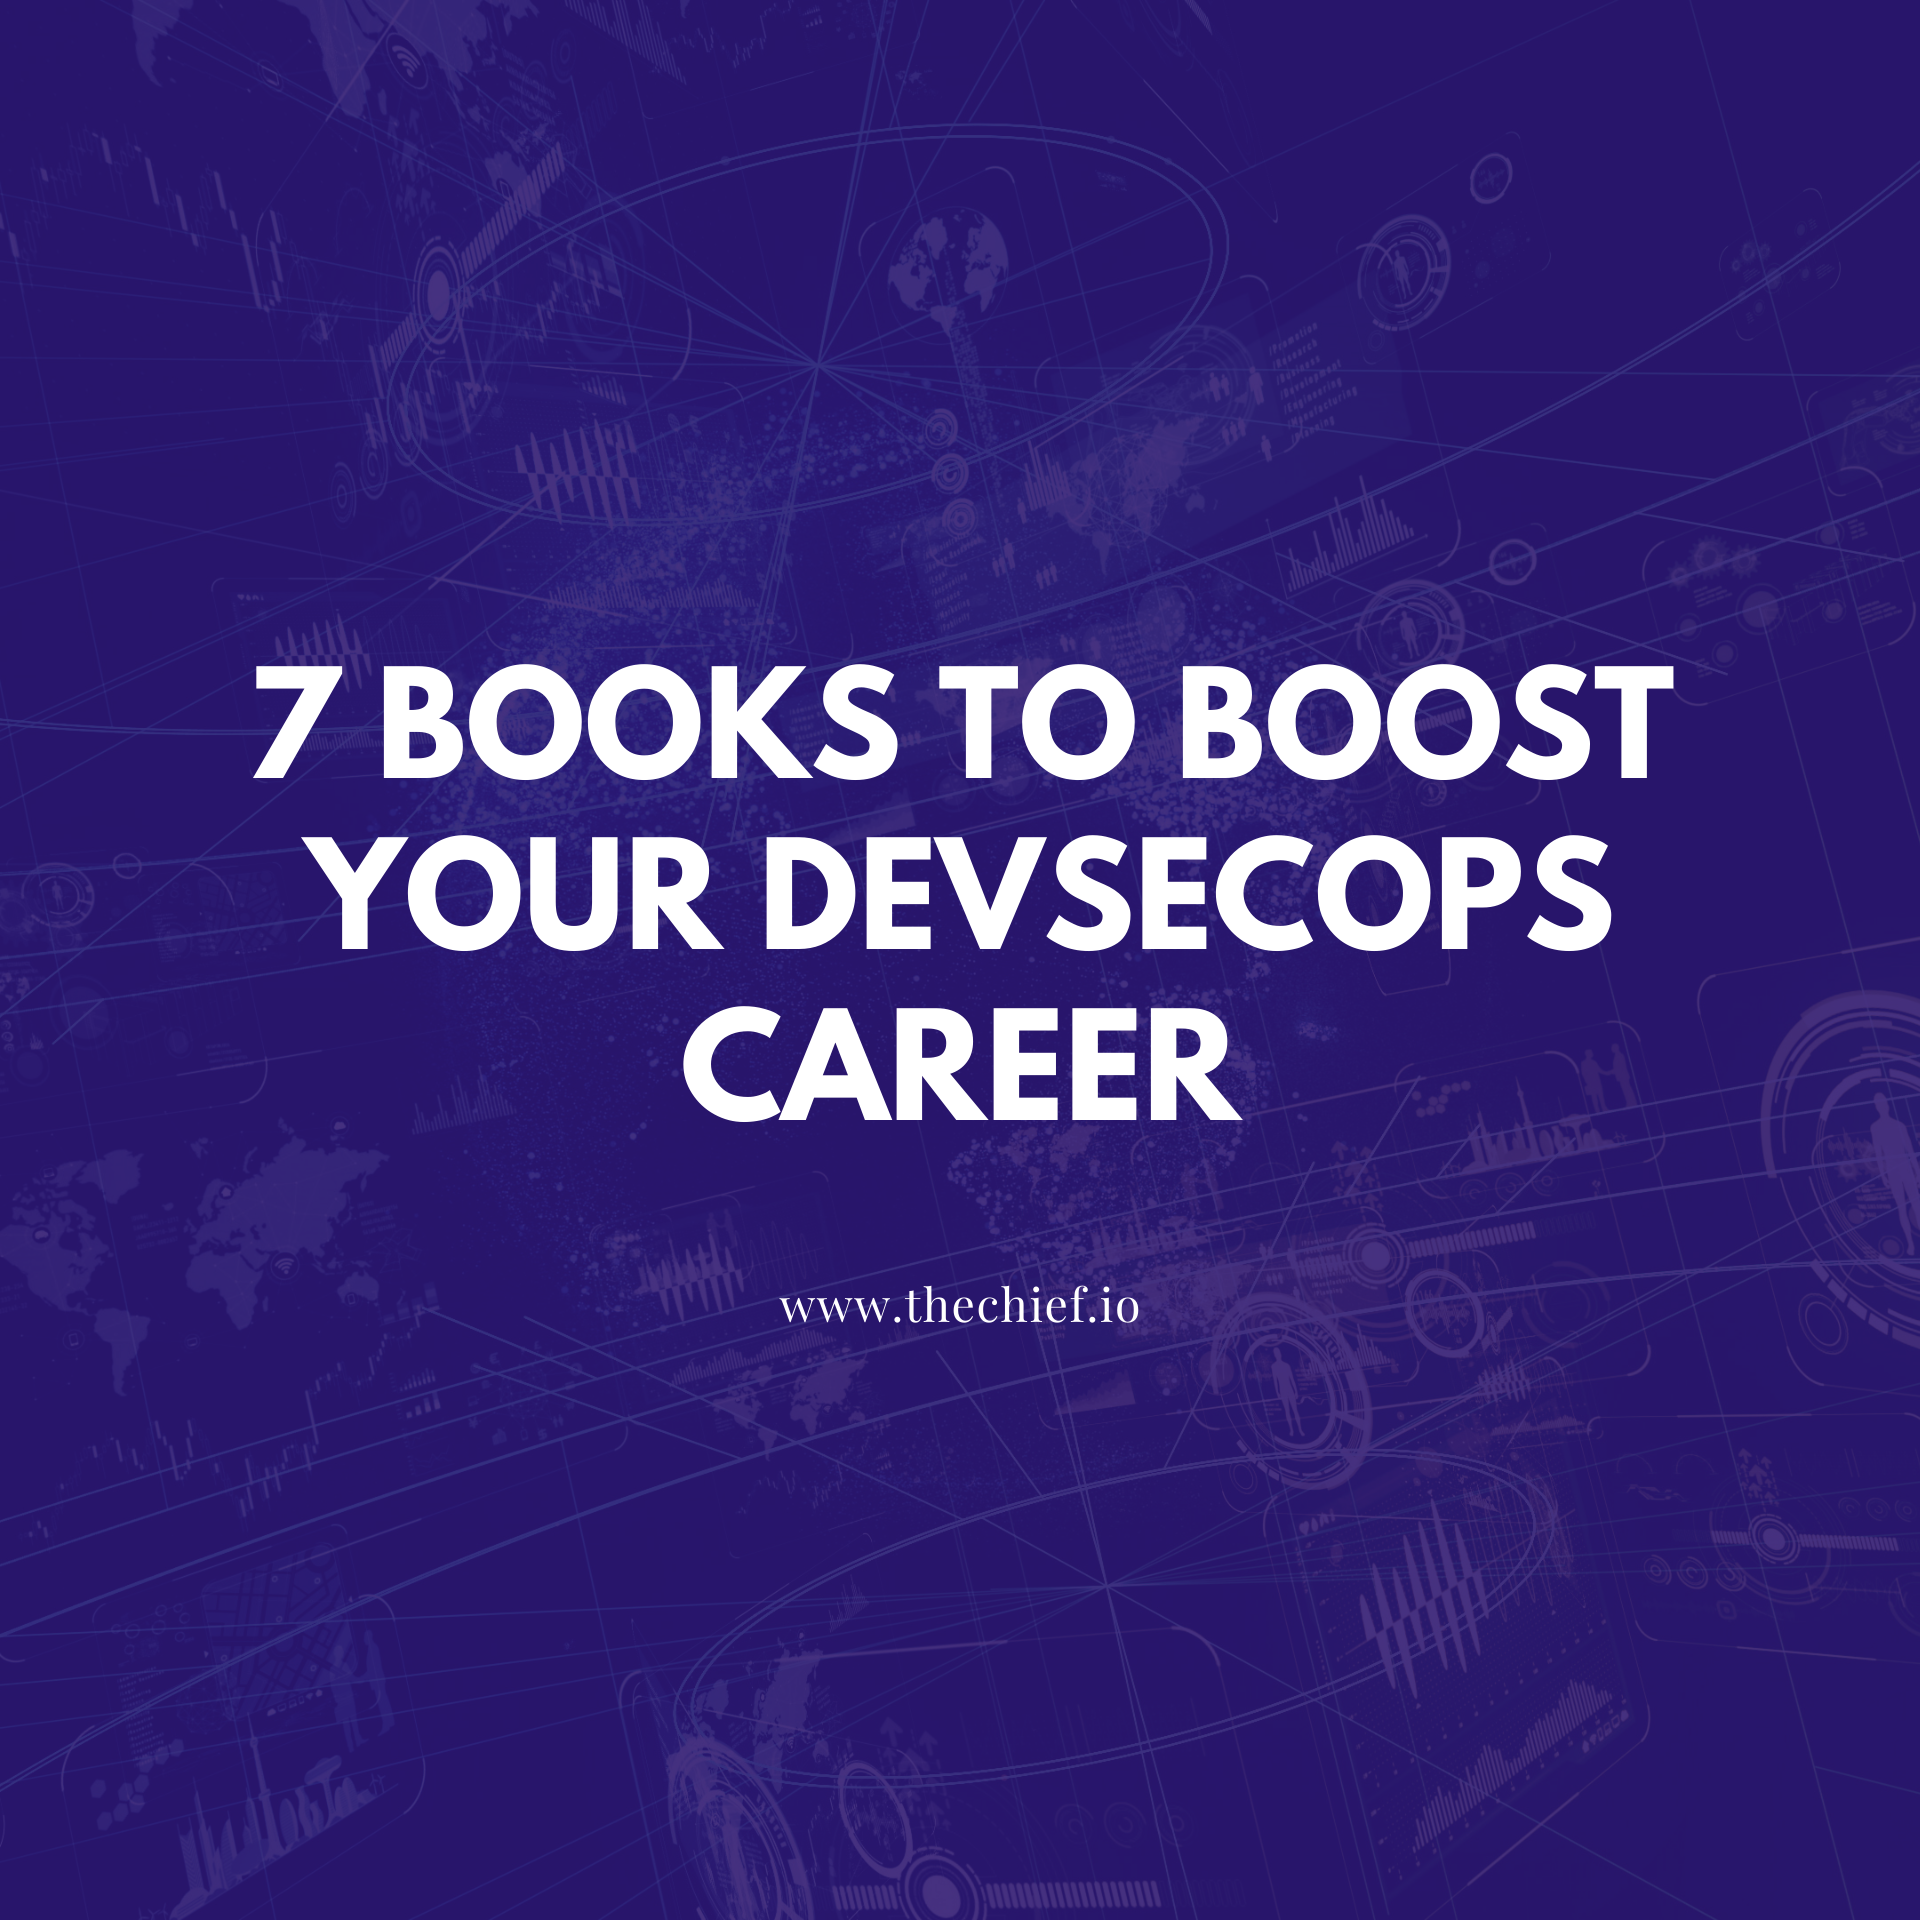 7 Books to Boost your DevSecOps Career